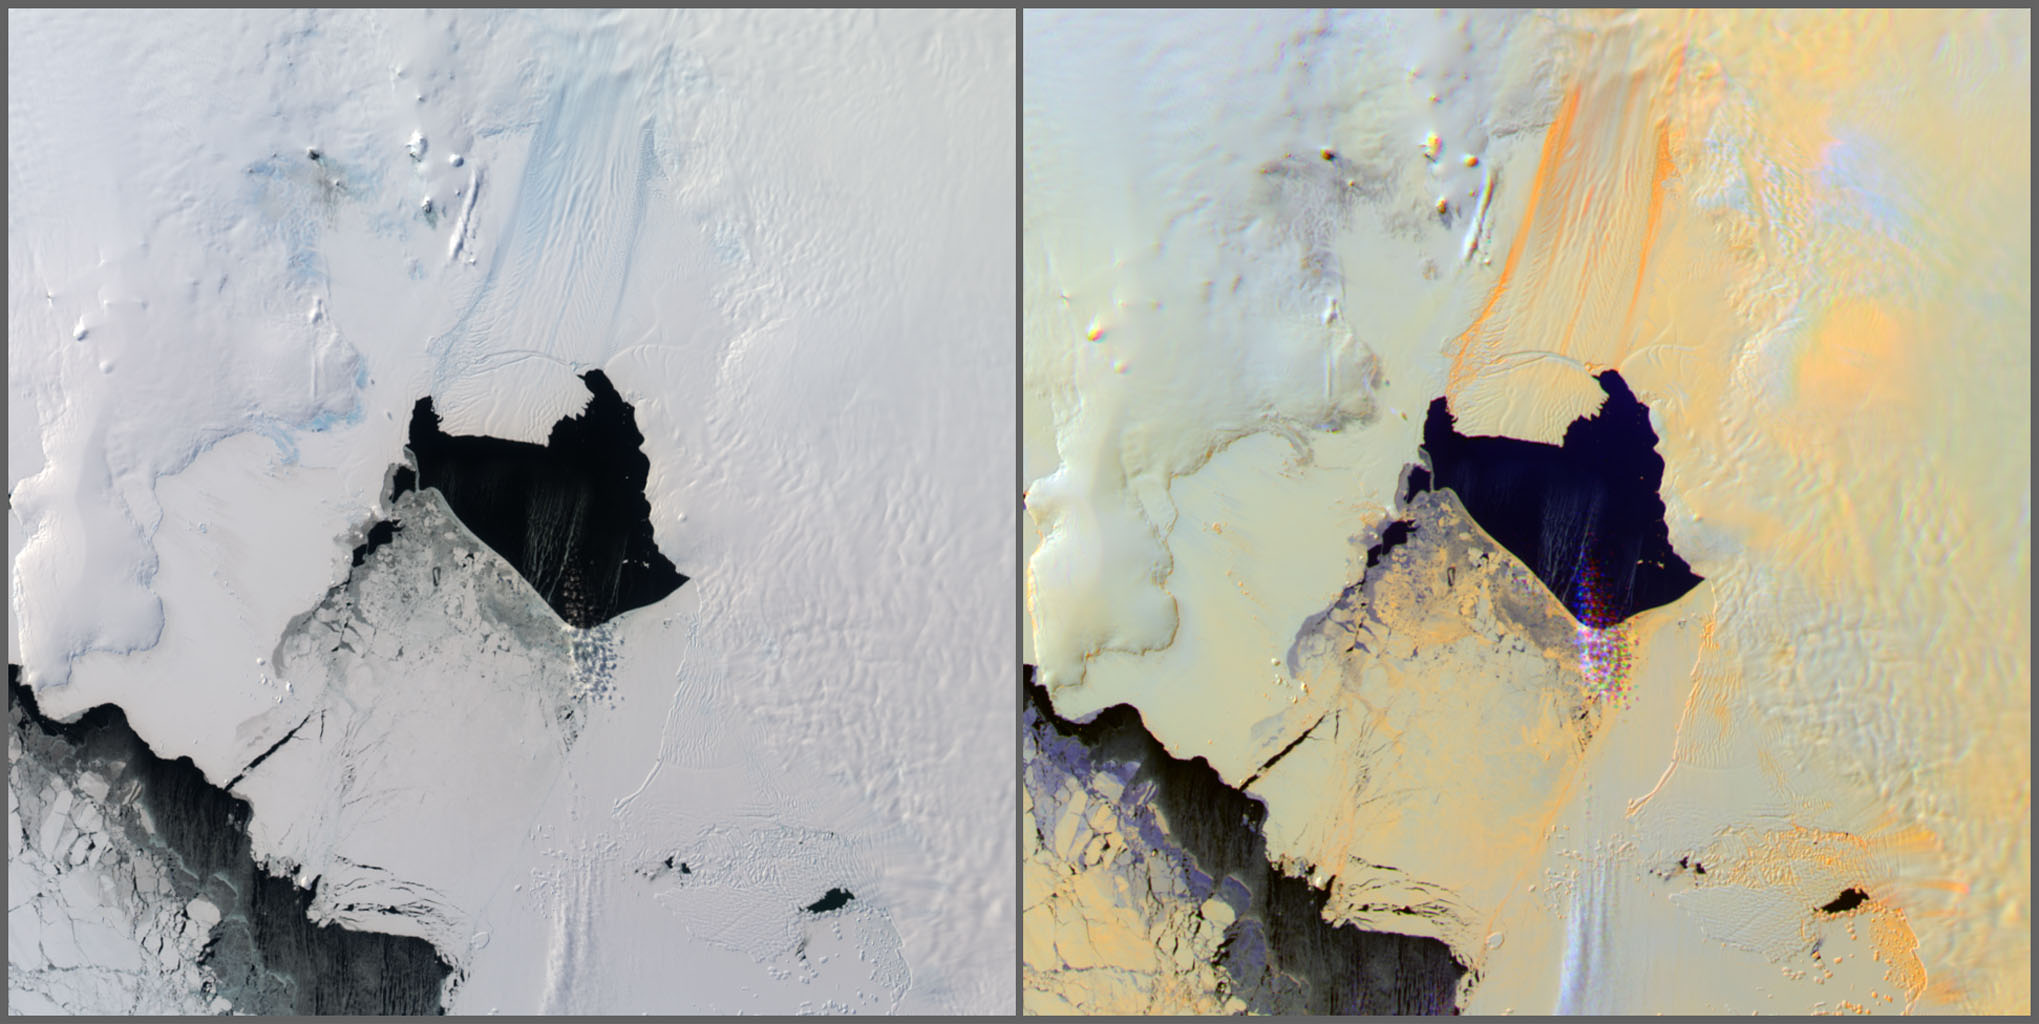 NASA's Terra satellite passed over the Pine Island Glacier in Antarctica around Oct. 27, 2013, just days before iceberg B-31 broke completely free. B-31 is finally moving away from the coast, with open water between the iceberg and the glacier.